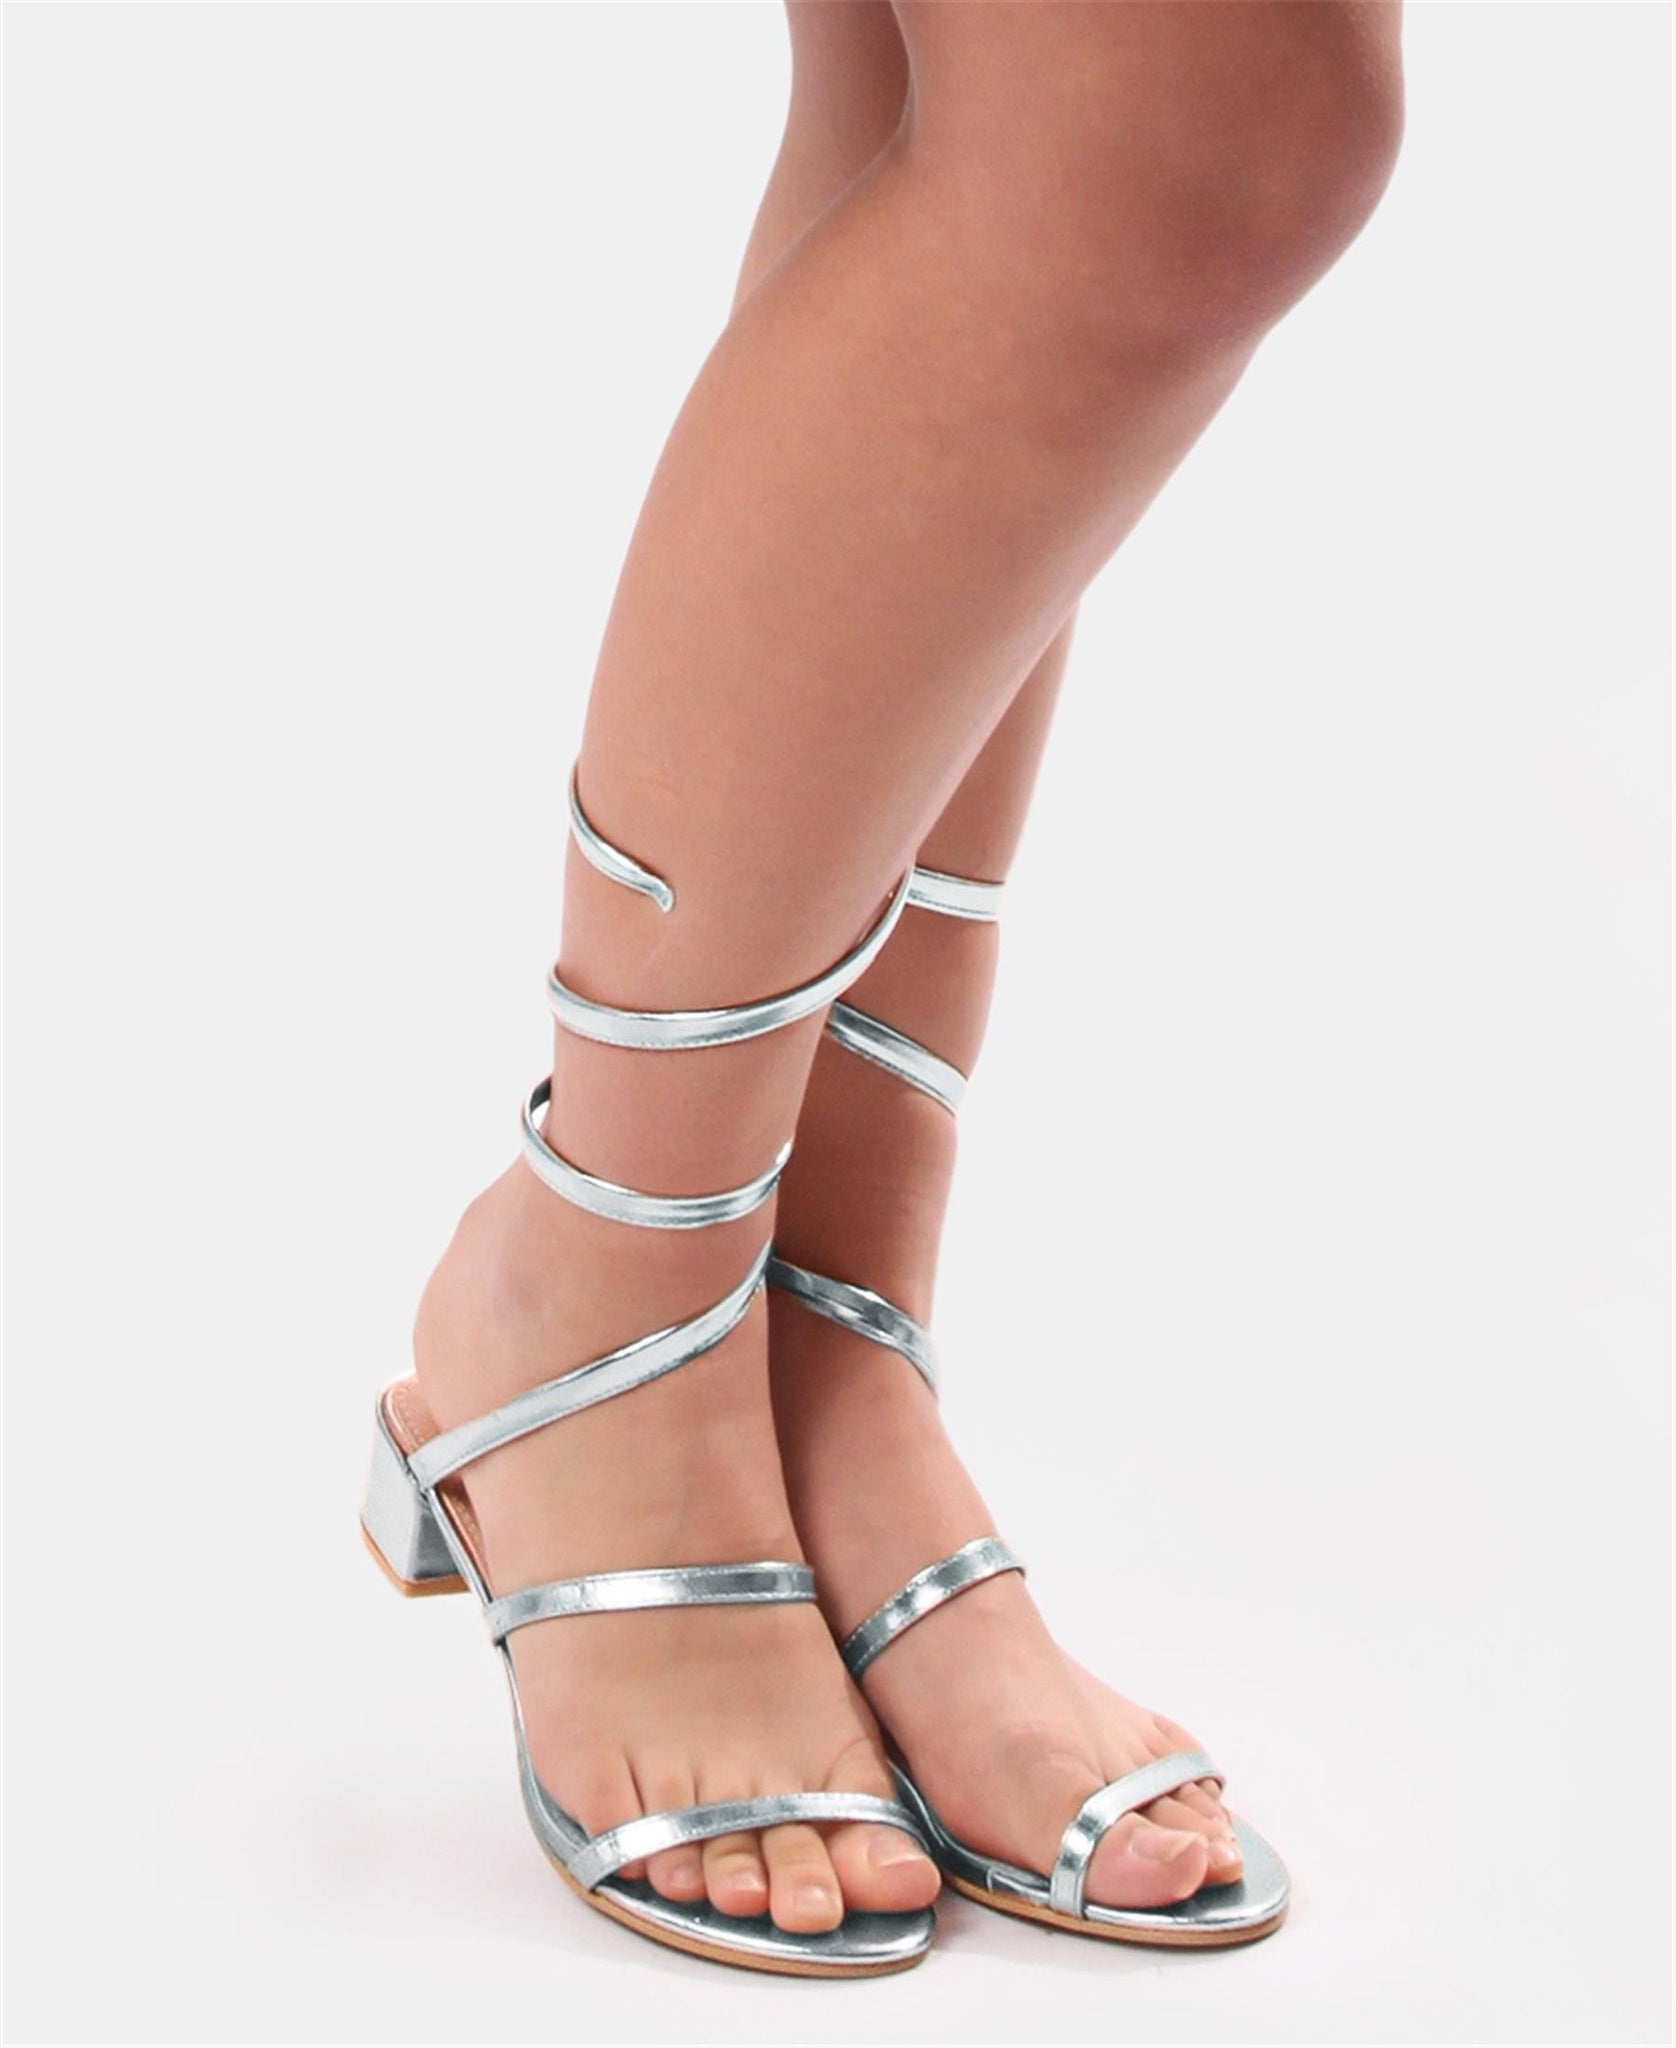 Strappy Sandals - Silver